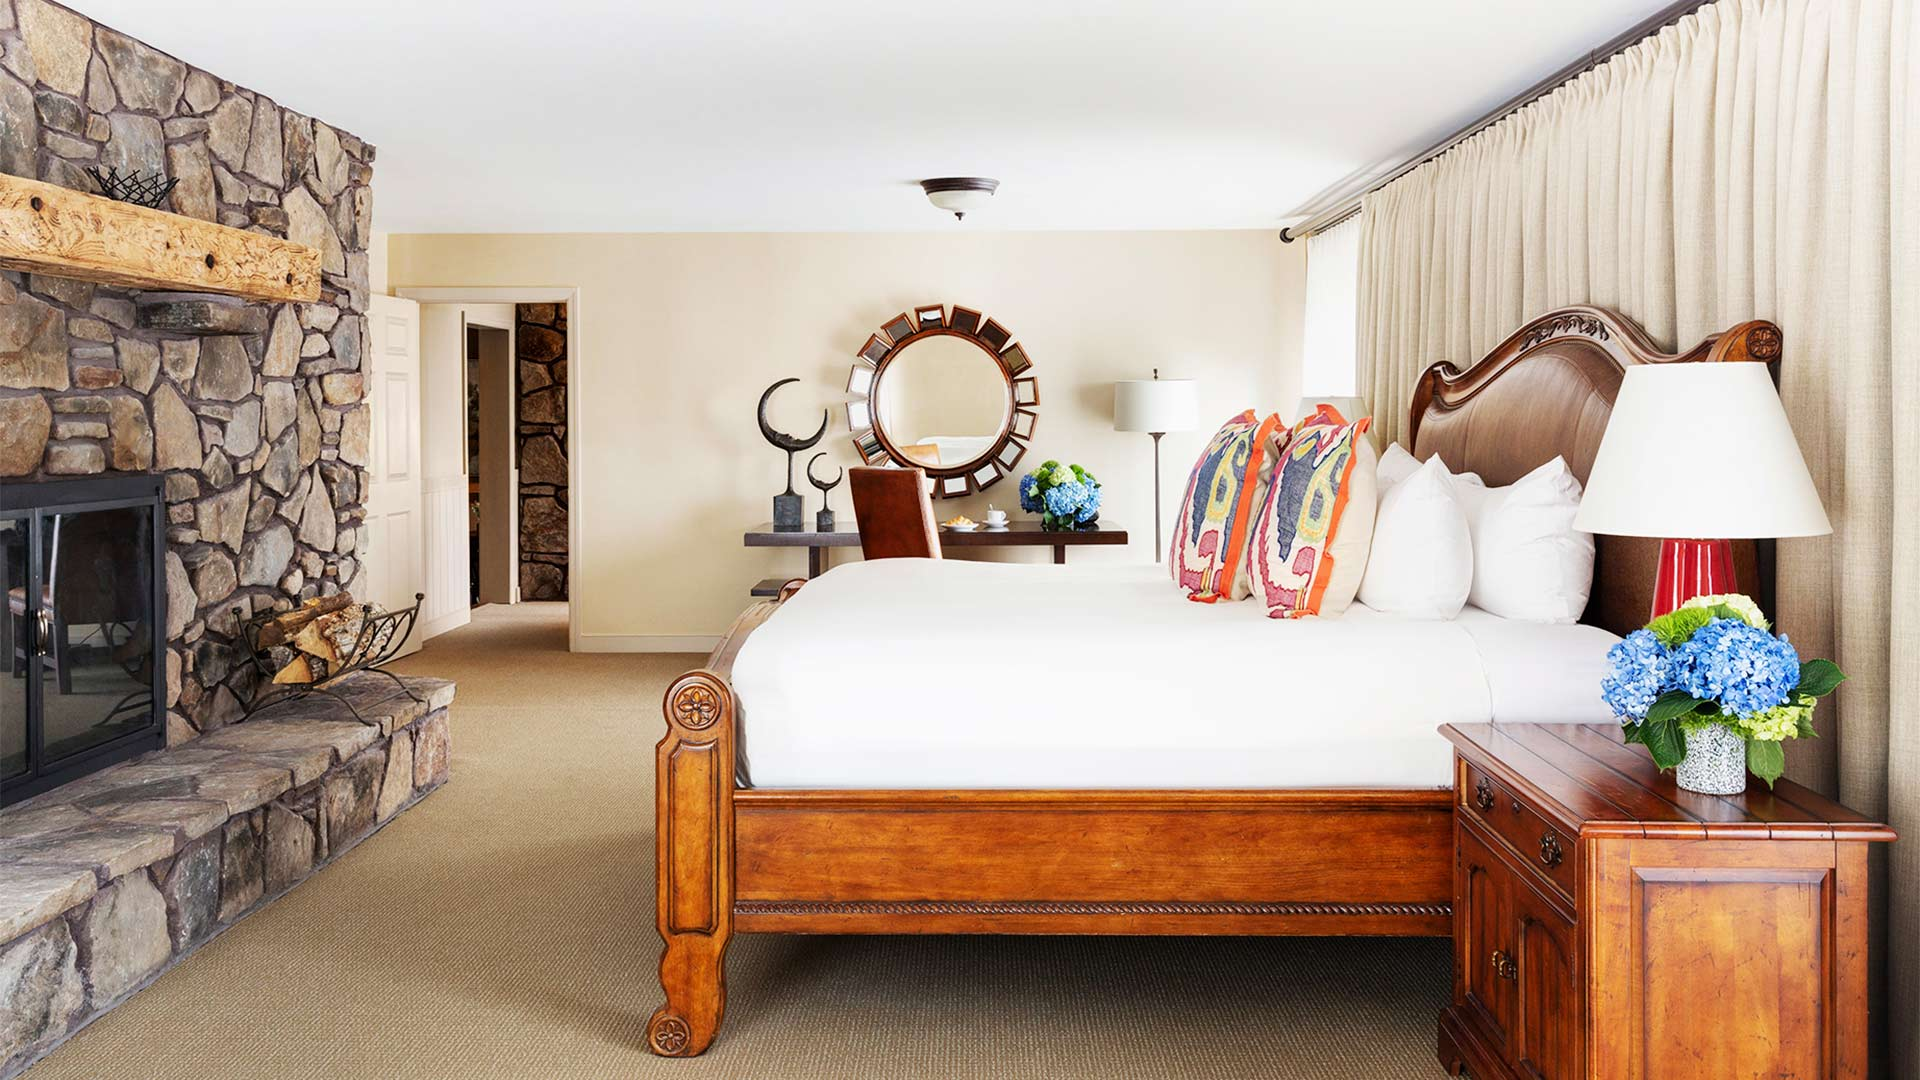 interior shot of a bedroom with a king bed with white linen and colorful throw pillows. There is a stone fireplace across from the bed. There is a vanity on the other side of the room.